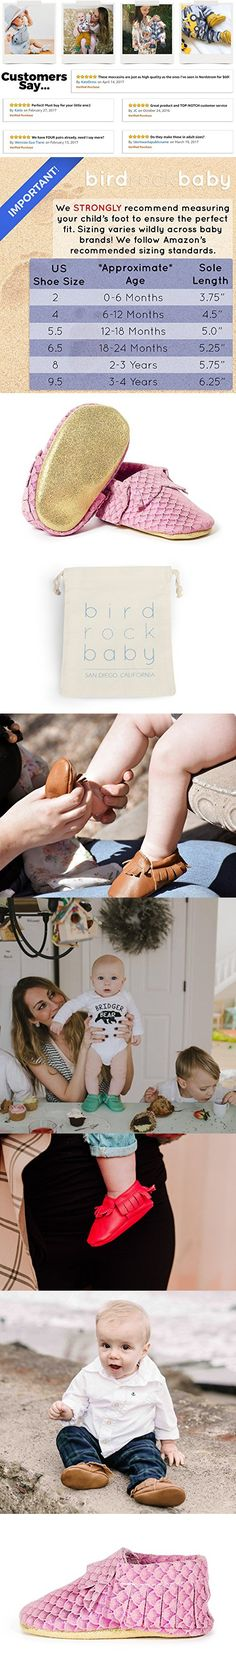 BirdRock Baby Moccasins - Soft Sole Leather Boys and Girls Shoes for Infants, Babies, and Toddlers (Preschooler | 3-4 Years | US 9.5, Pink Mermaid)